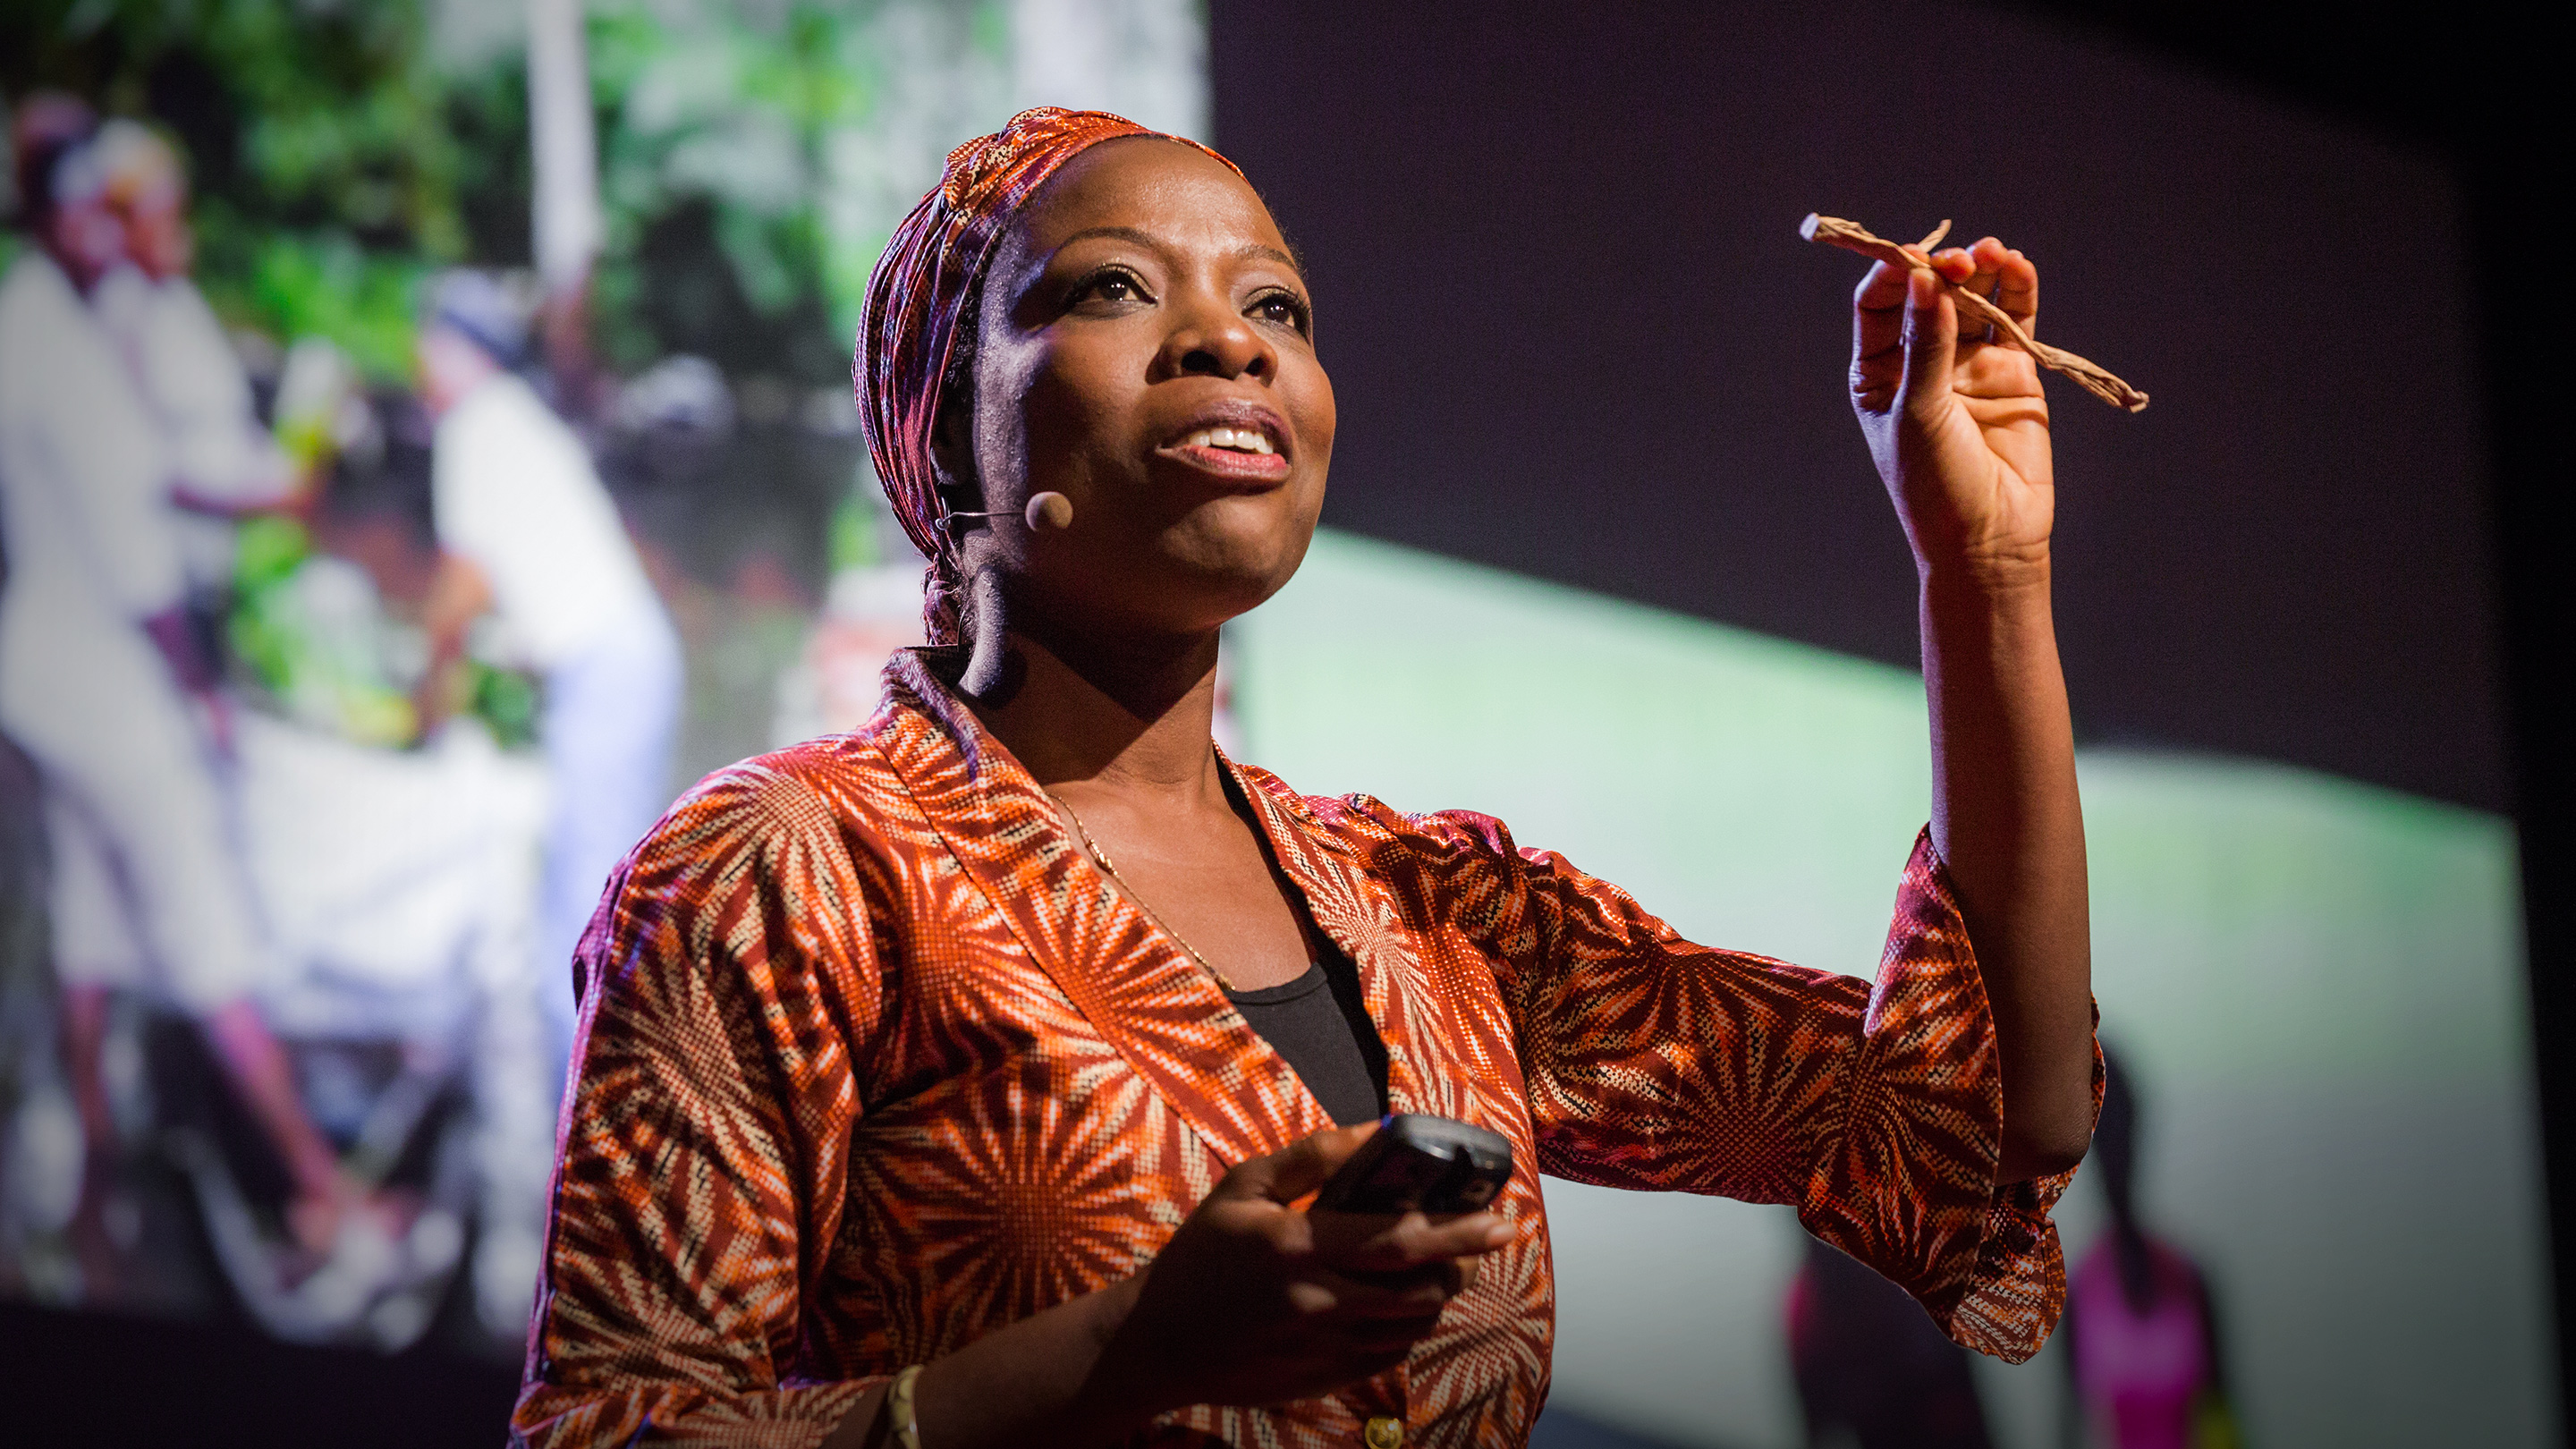 Achenyo Idachaba: How I turned a deadly plant into a thriving business thumbnail